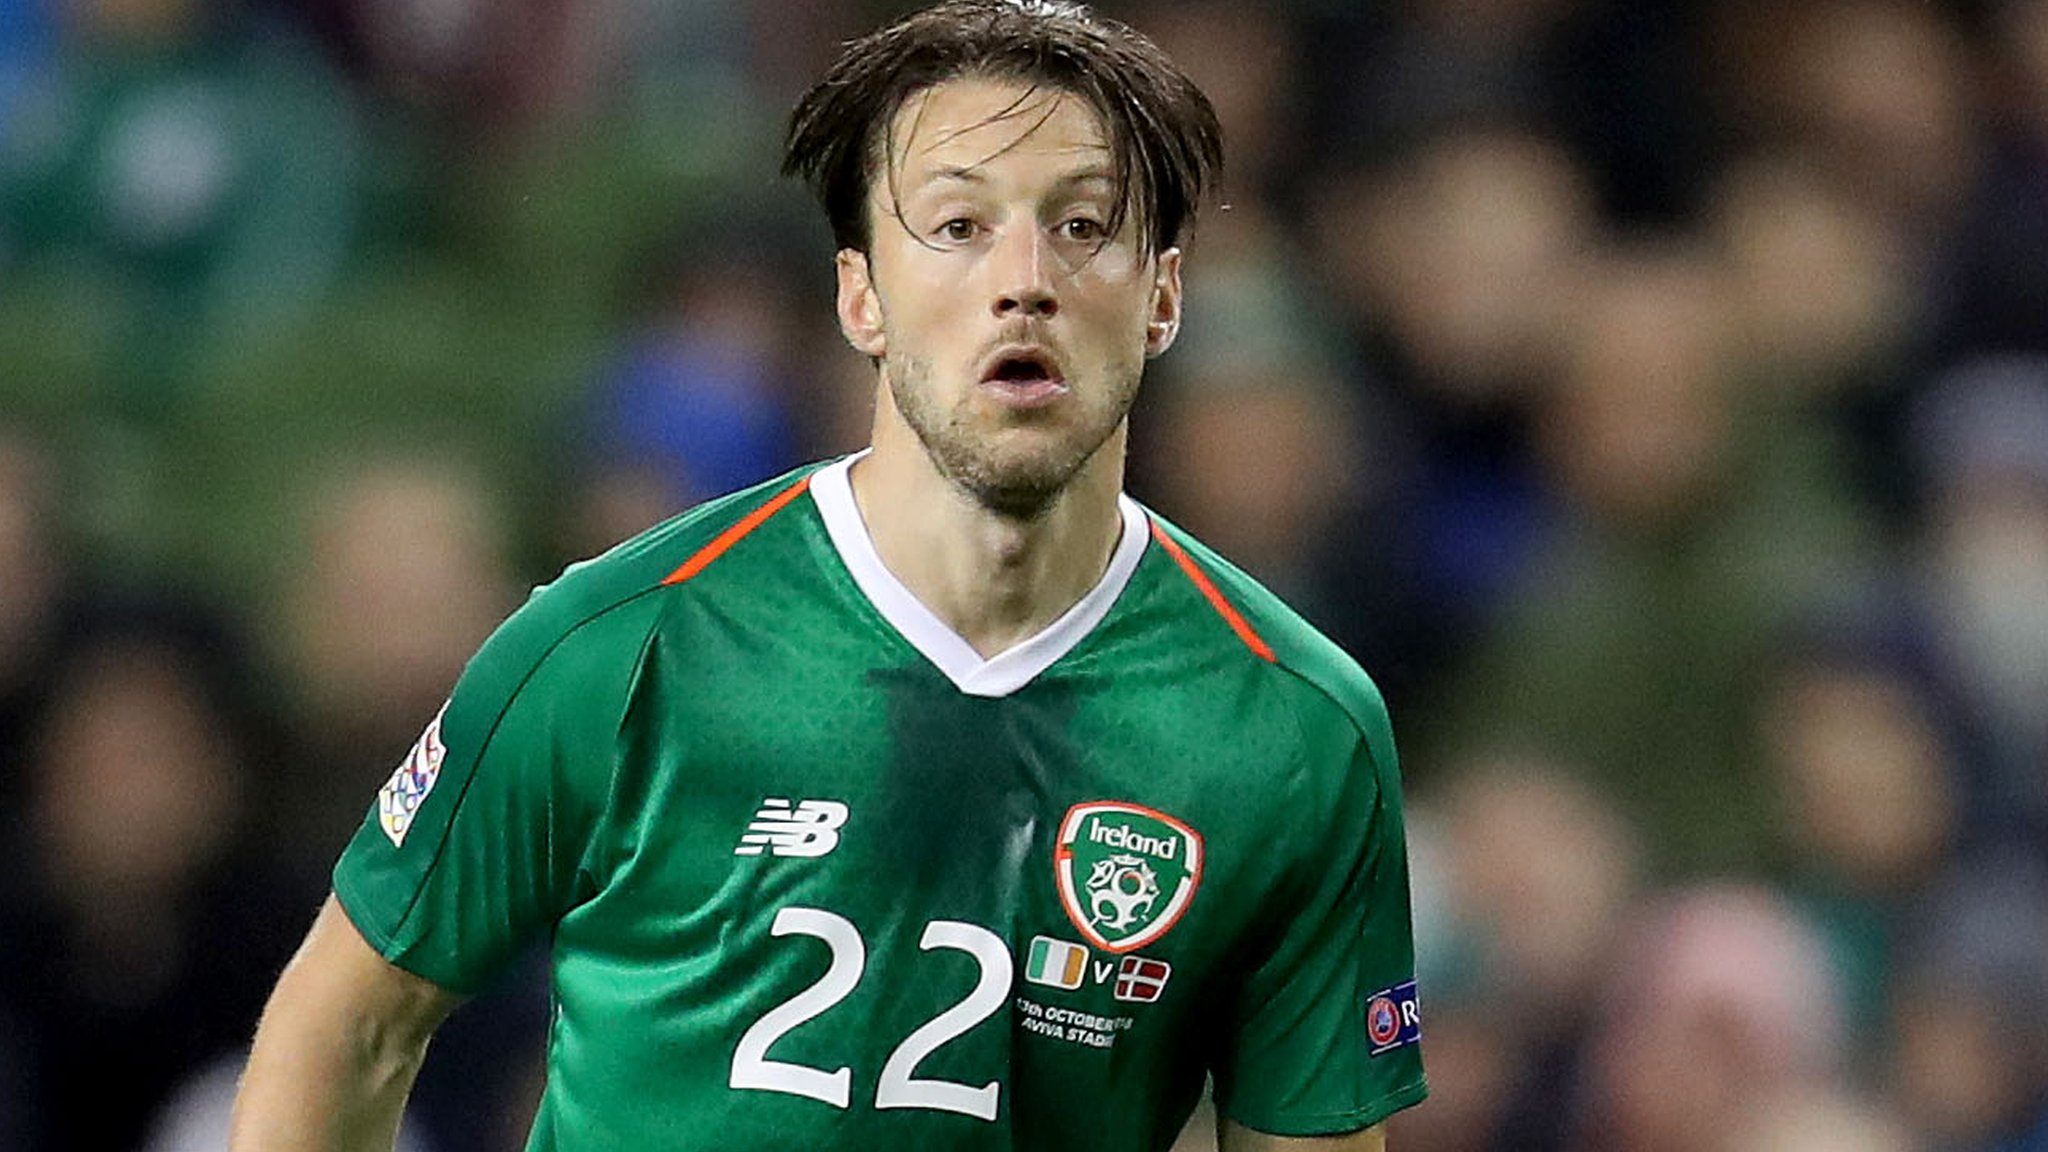 Republic midfielder Arter 'never needed' Keane apology